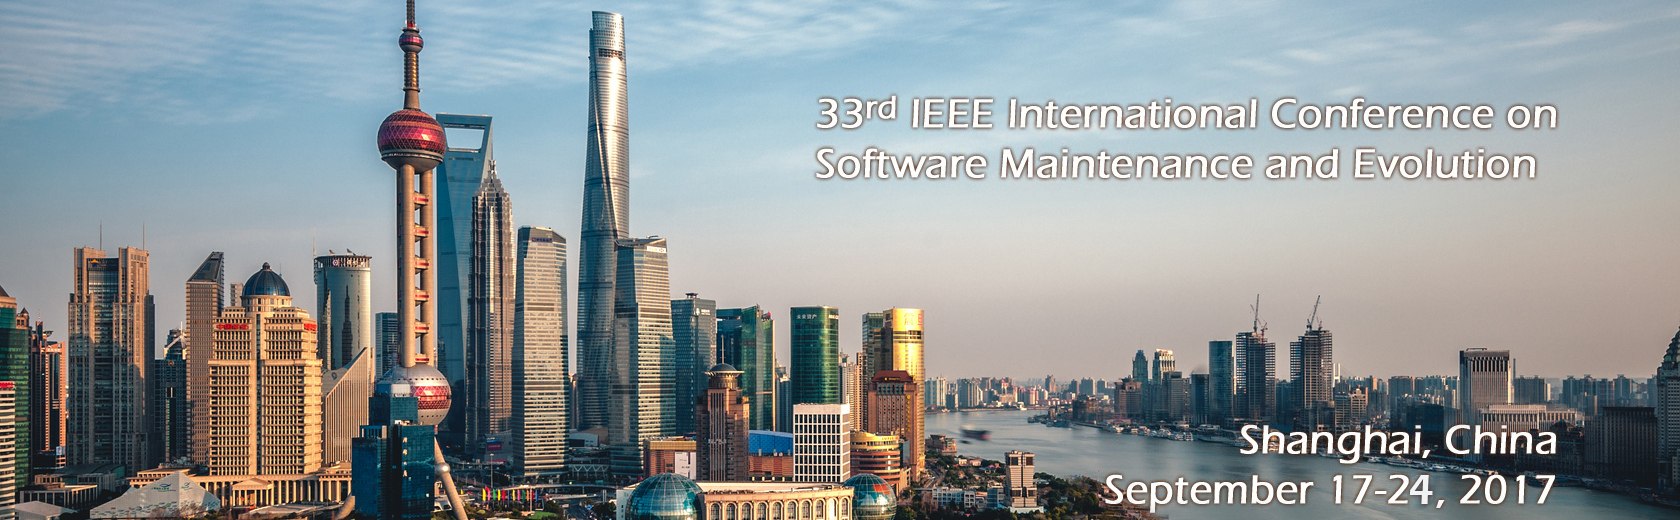 IEEE International Conference on Software Maintenance and Evolution (ICSME)